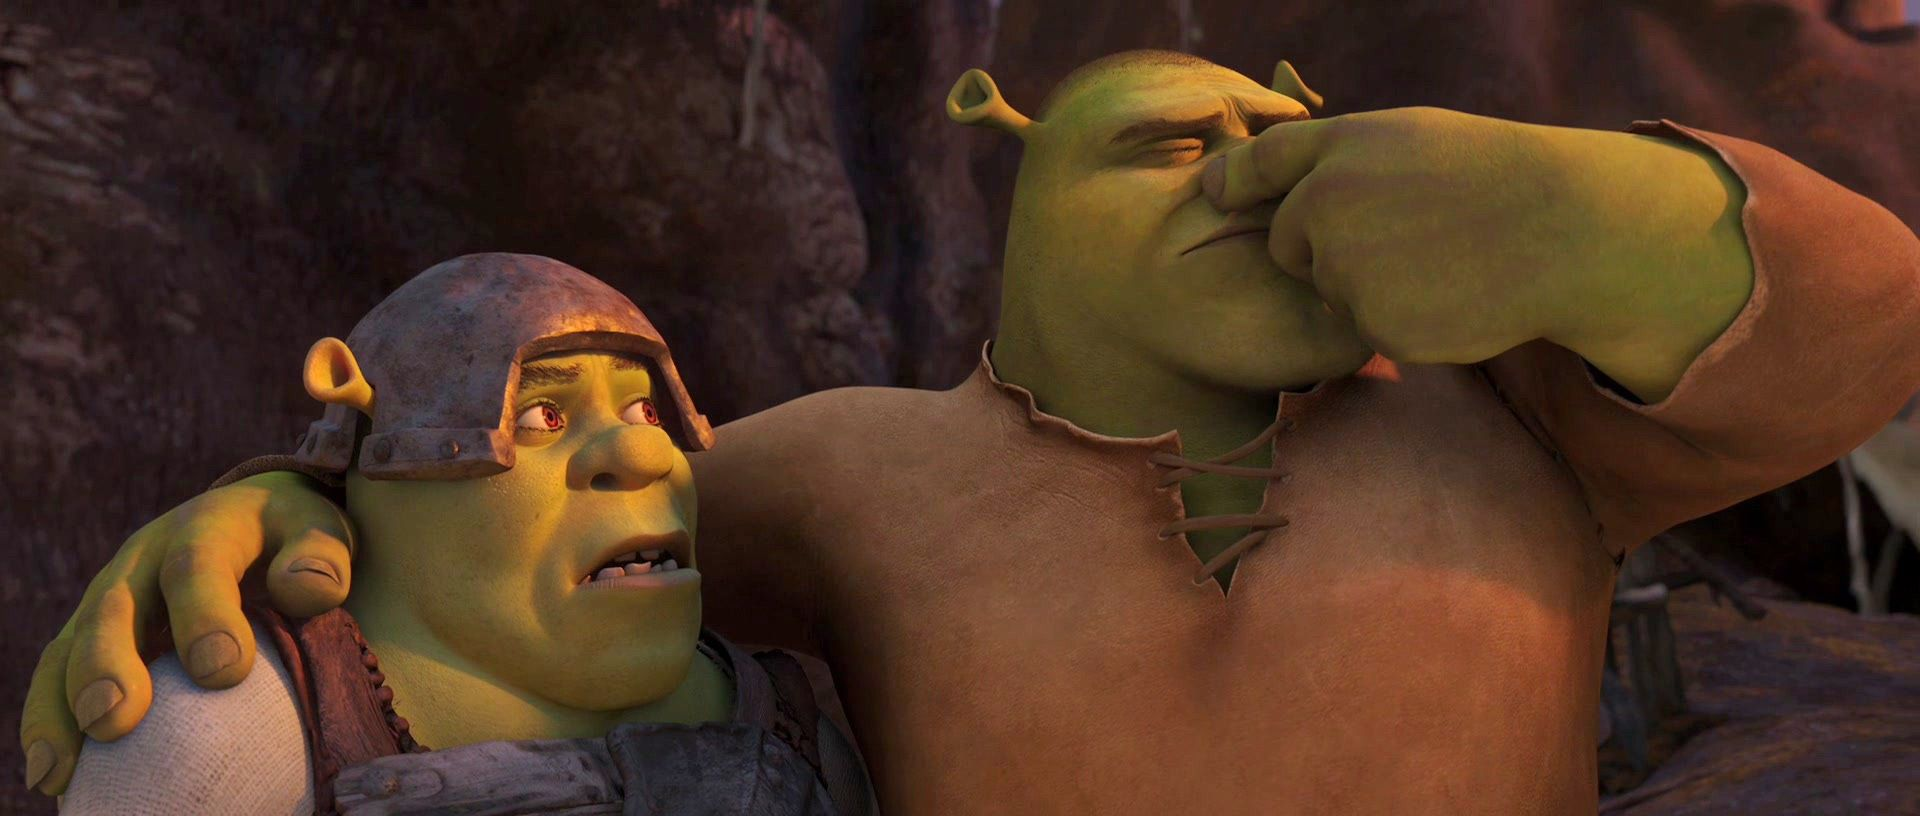 Descarga shrek porno xxx erotic galleries